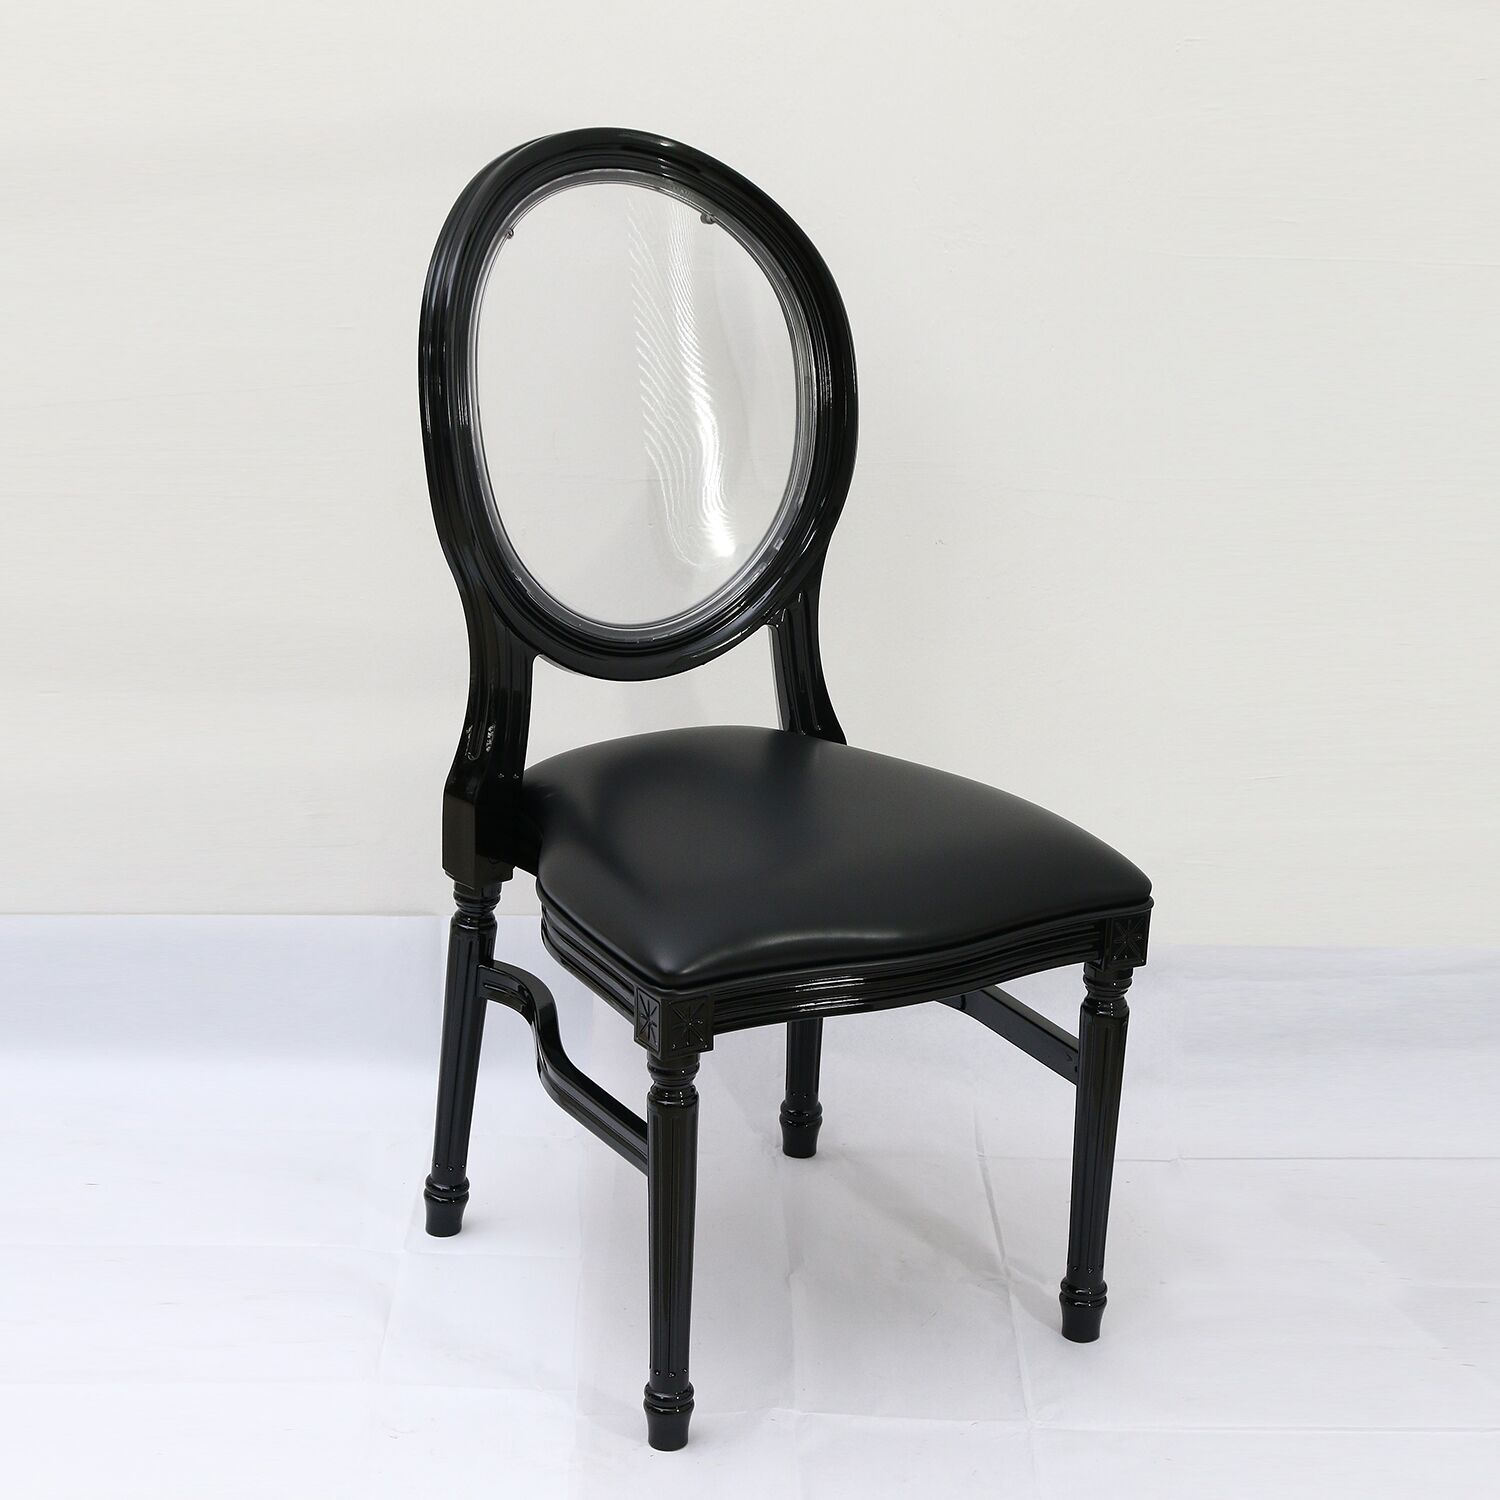 OEM/ODM Supplier Shunde Church Chairs -